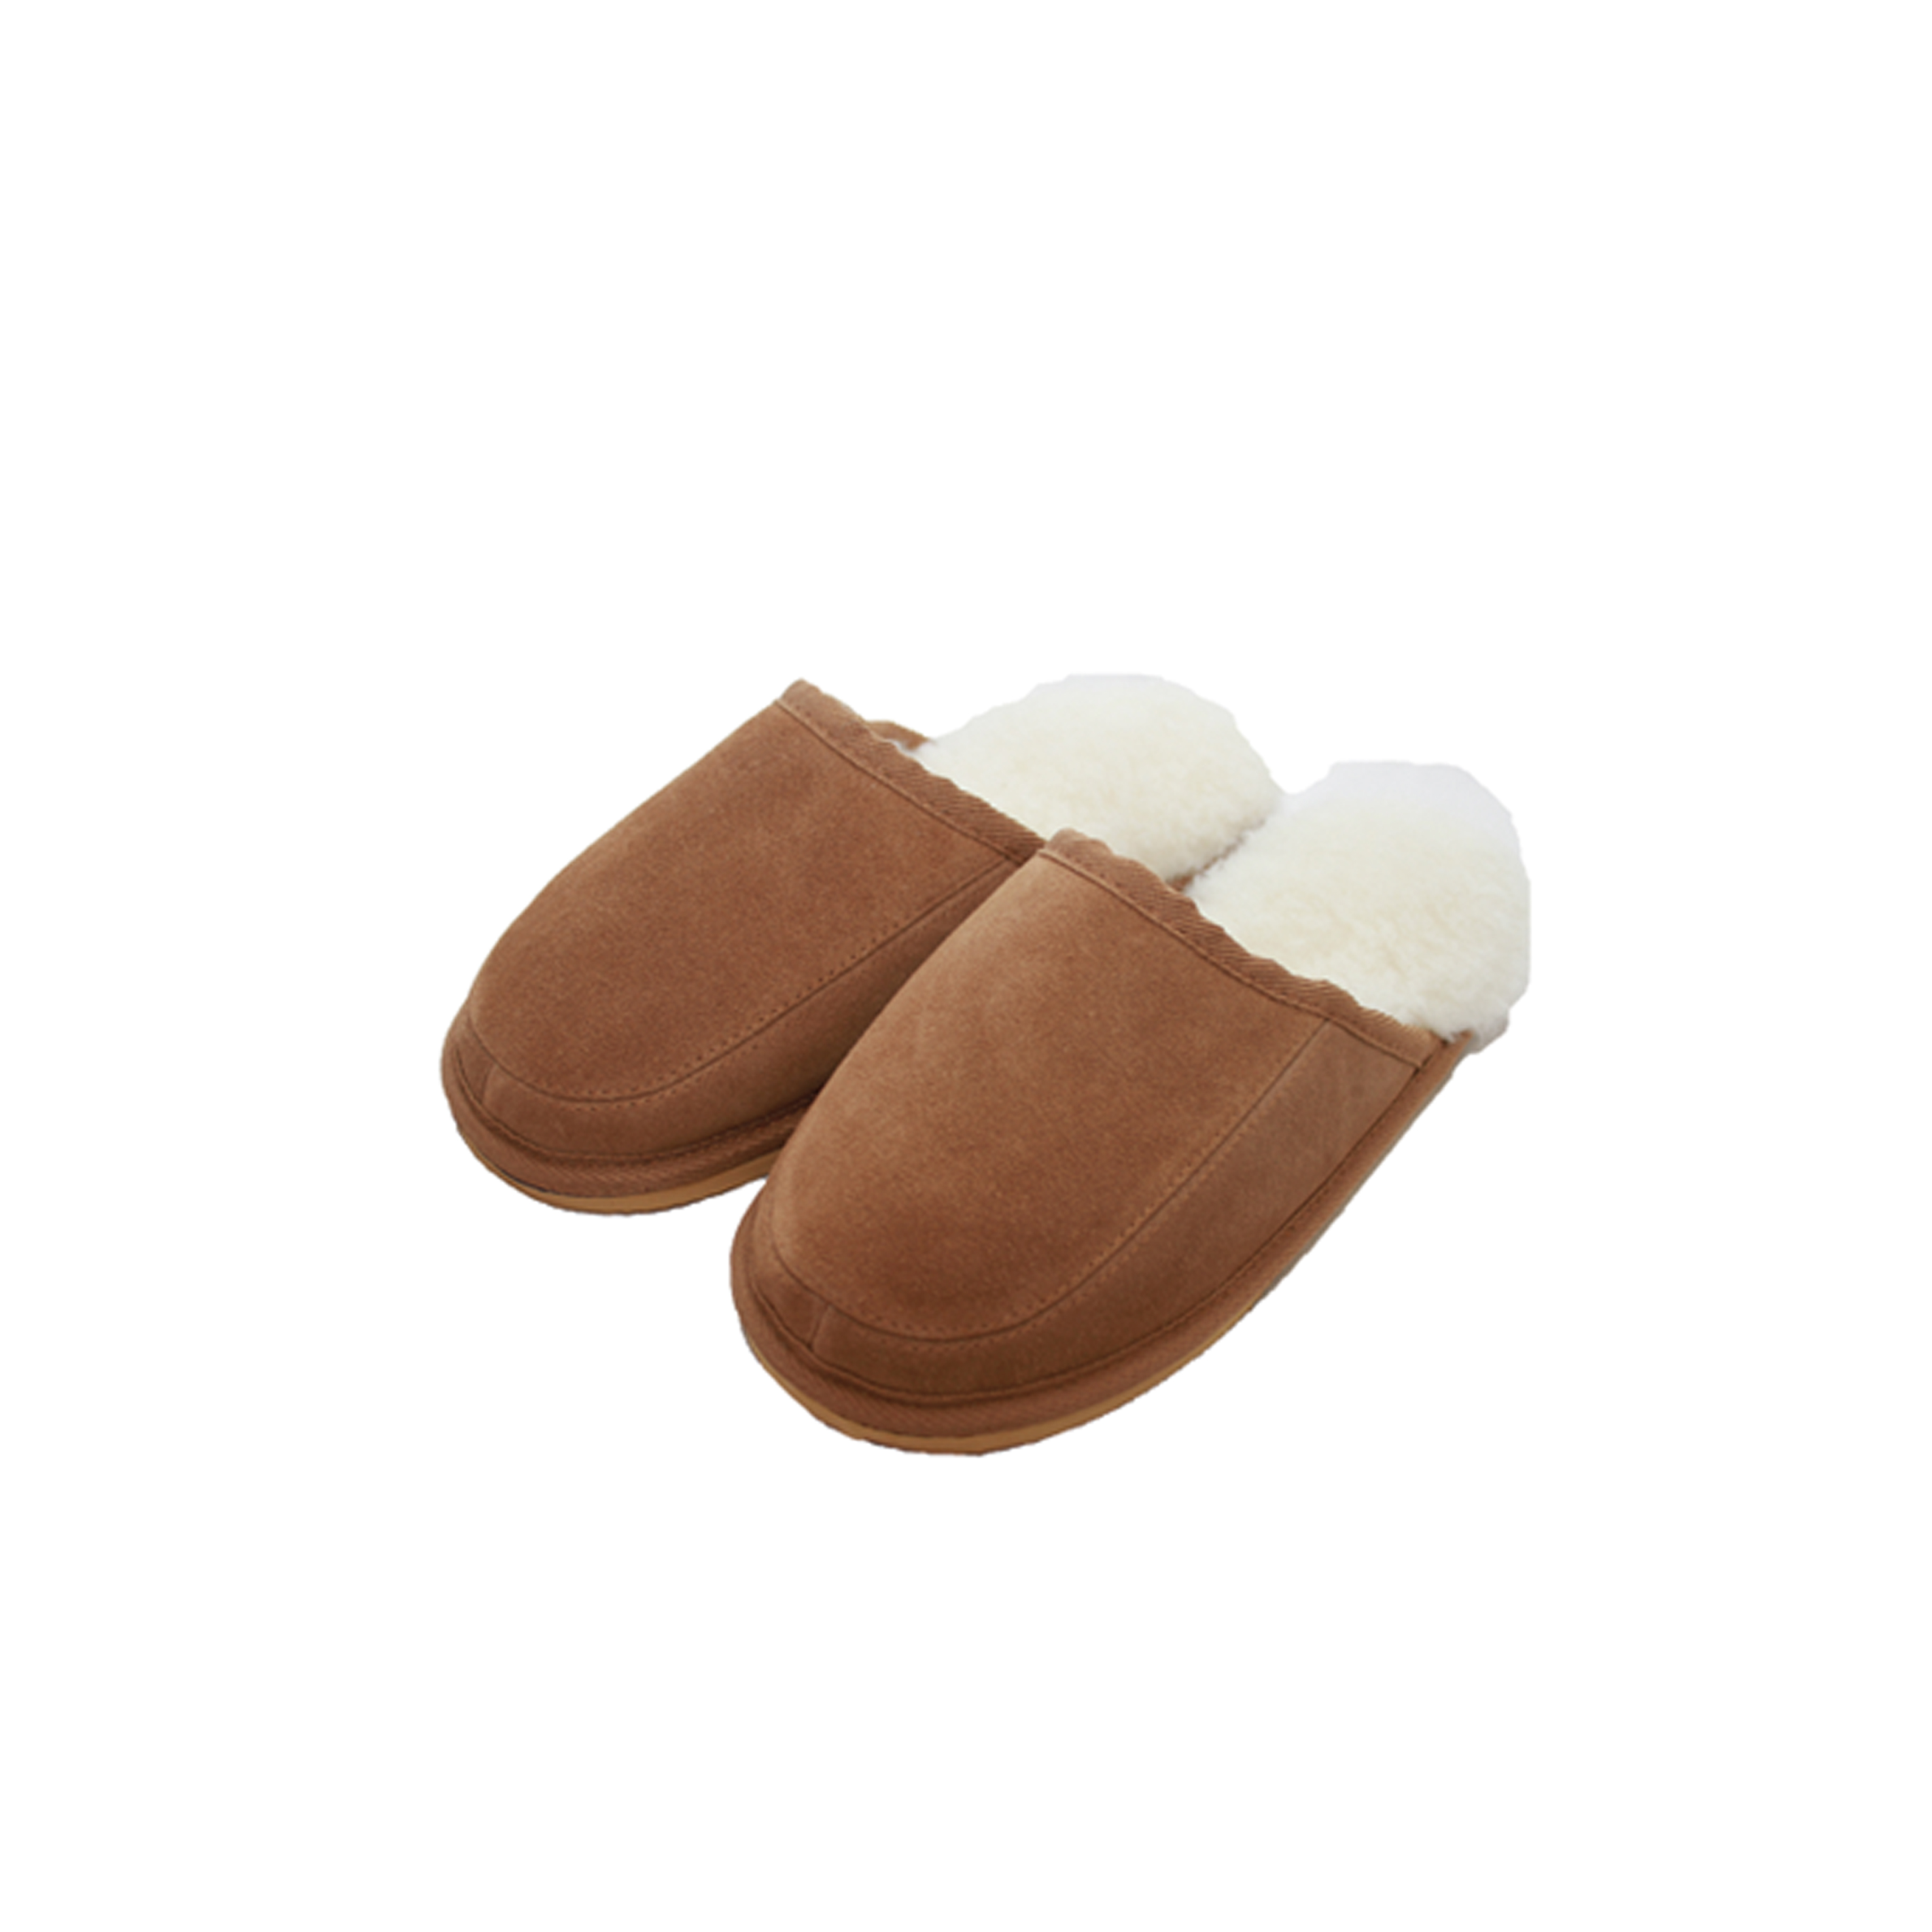 Wool lined slipper mule – James